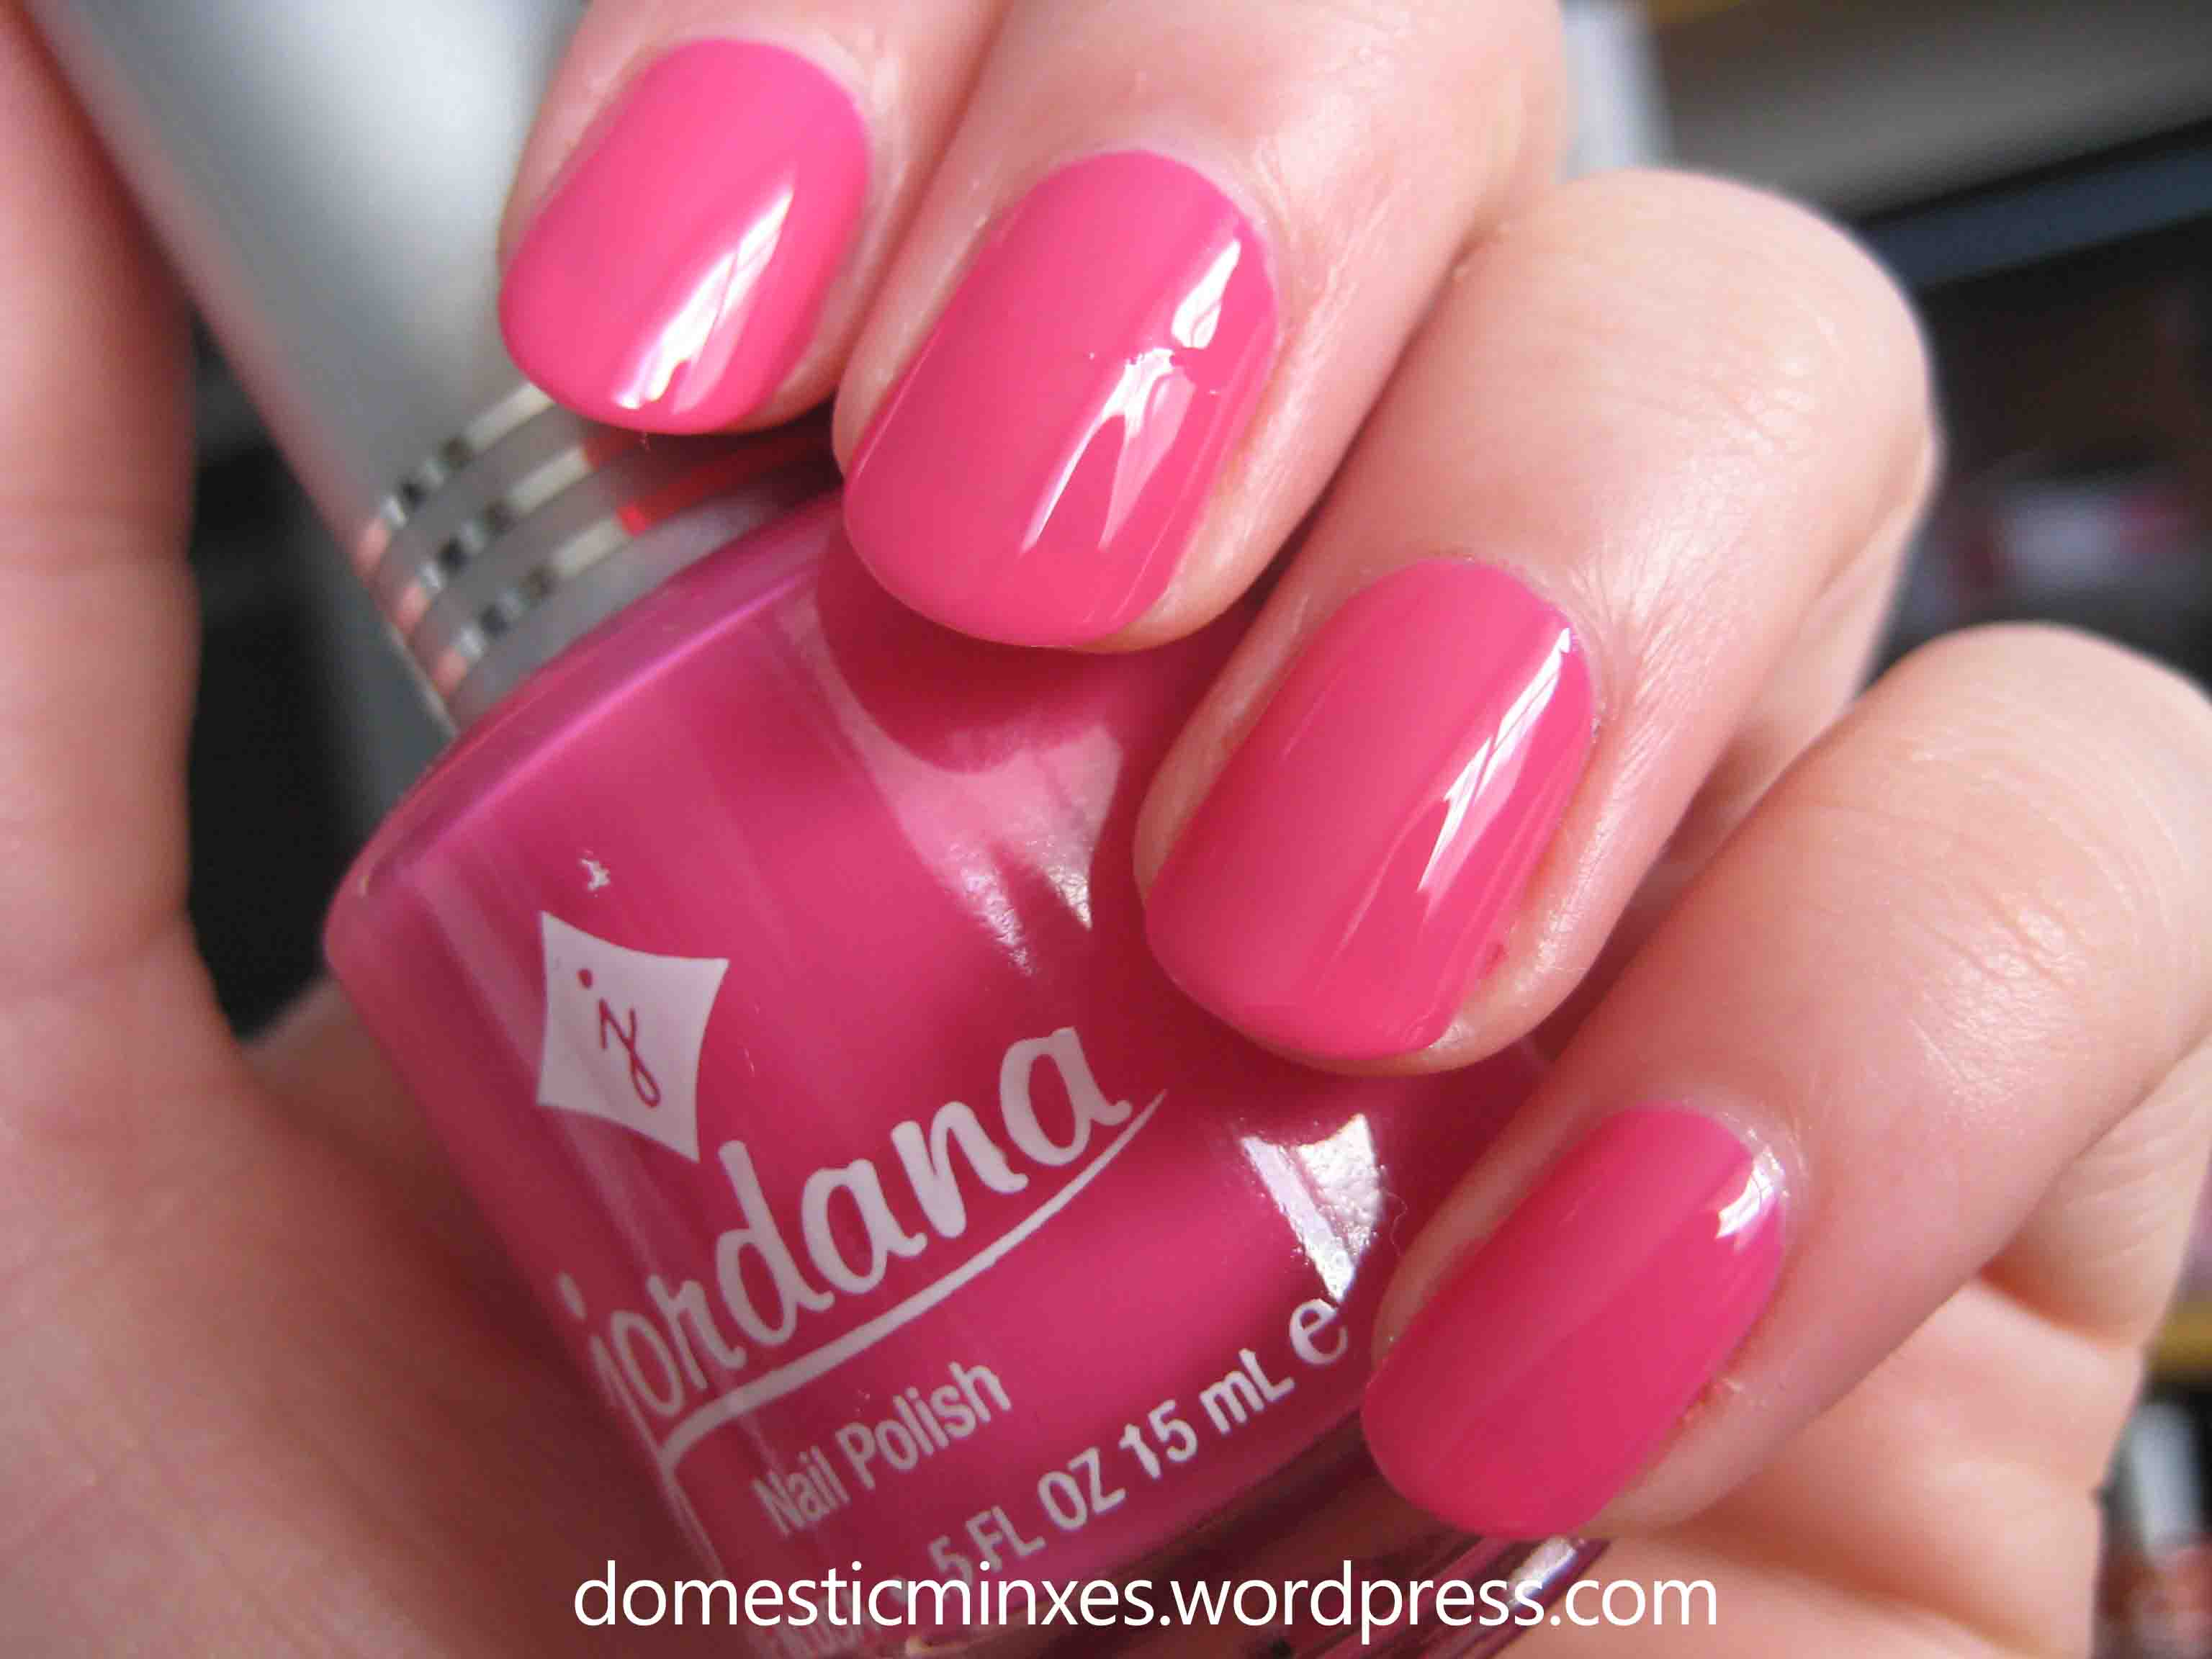 Jordana Nail Polish Swatches | DomesticMinxes